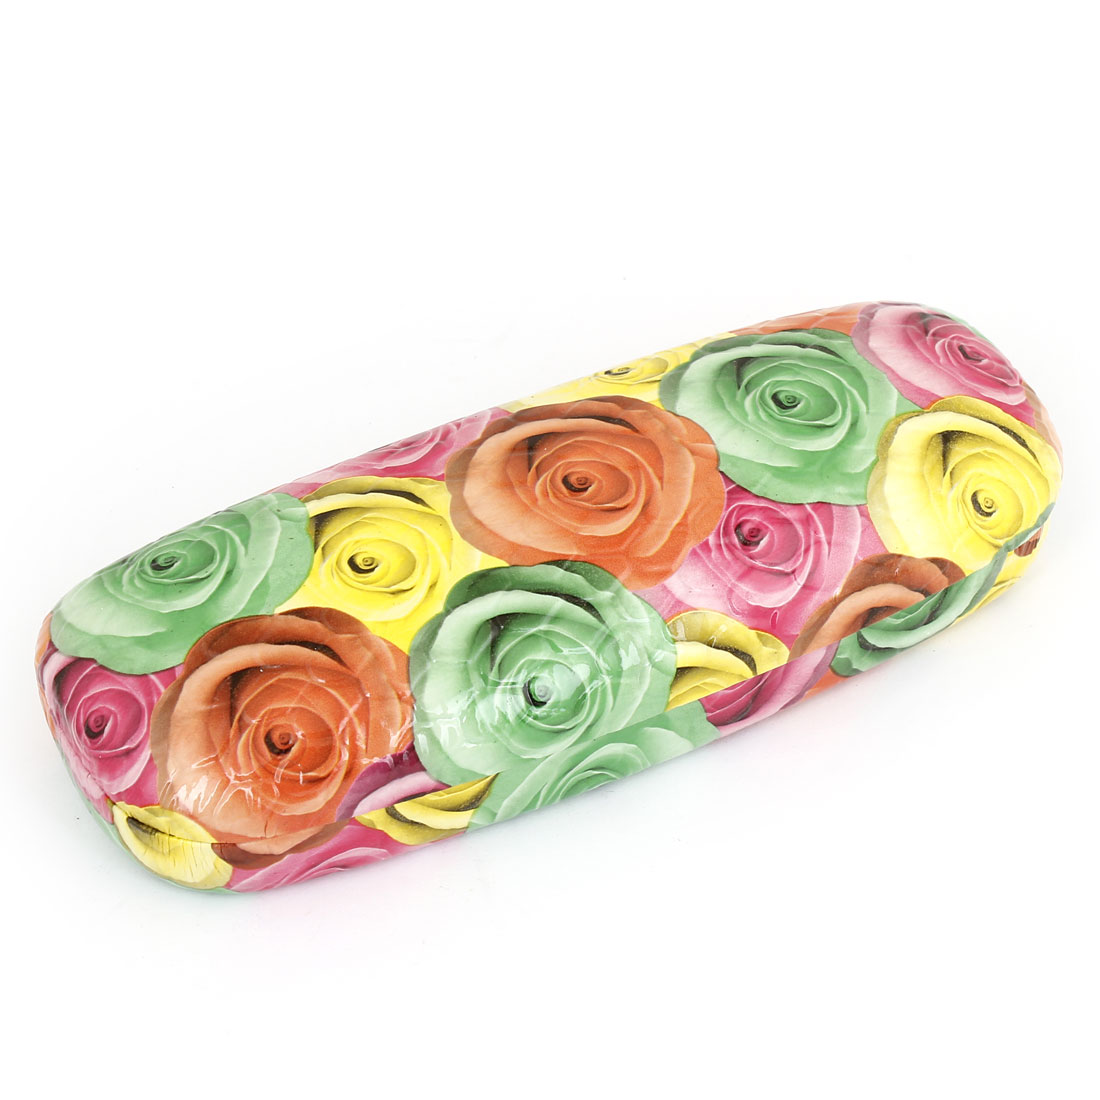 Assorted Color Rose Pattern Rectangle Shape Eyeglasses Case Box Container Holder